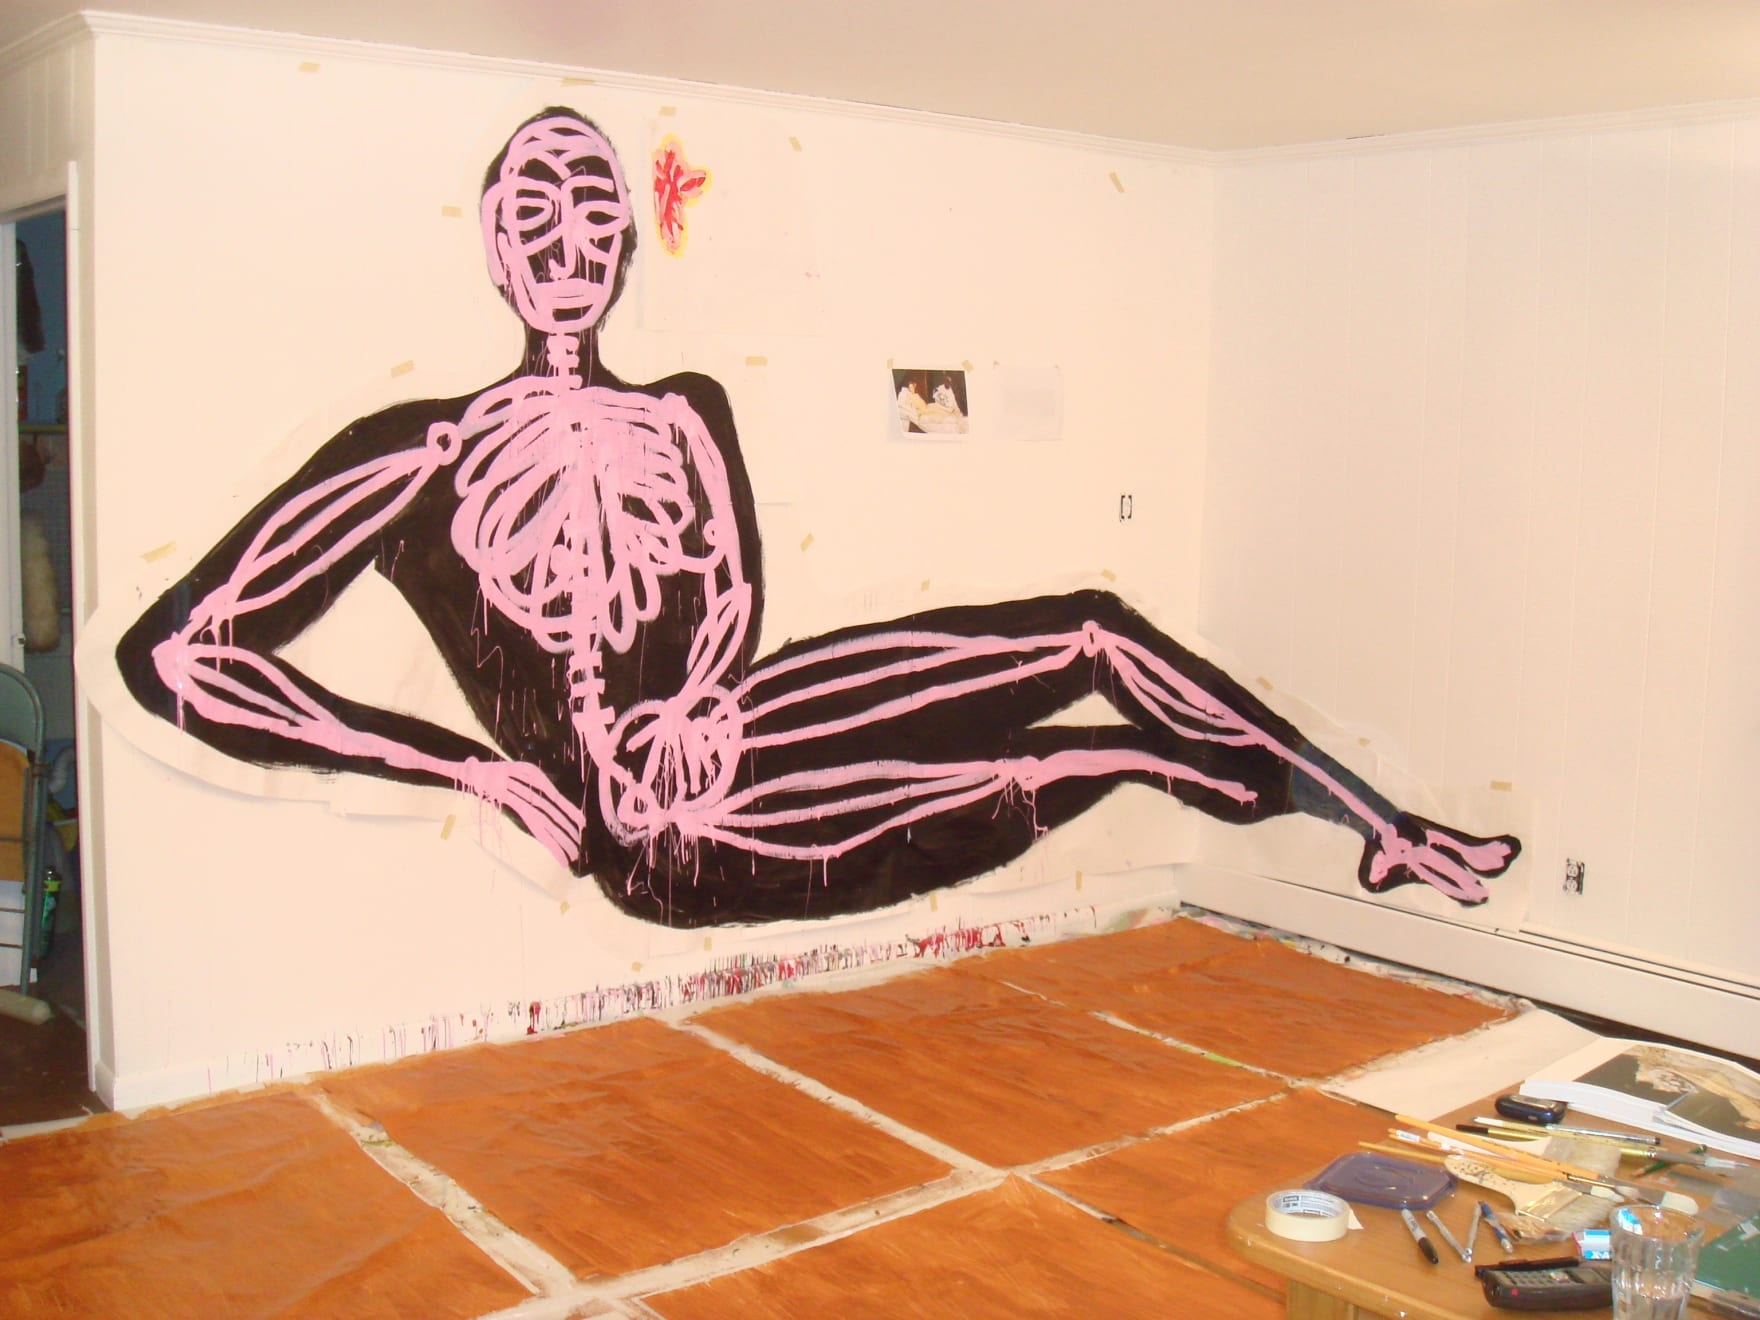 Olympia In progress at Westchester studio. 2007